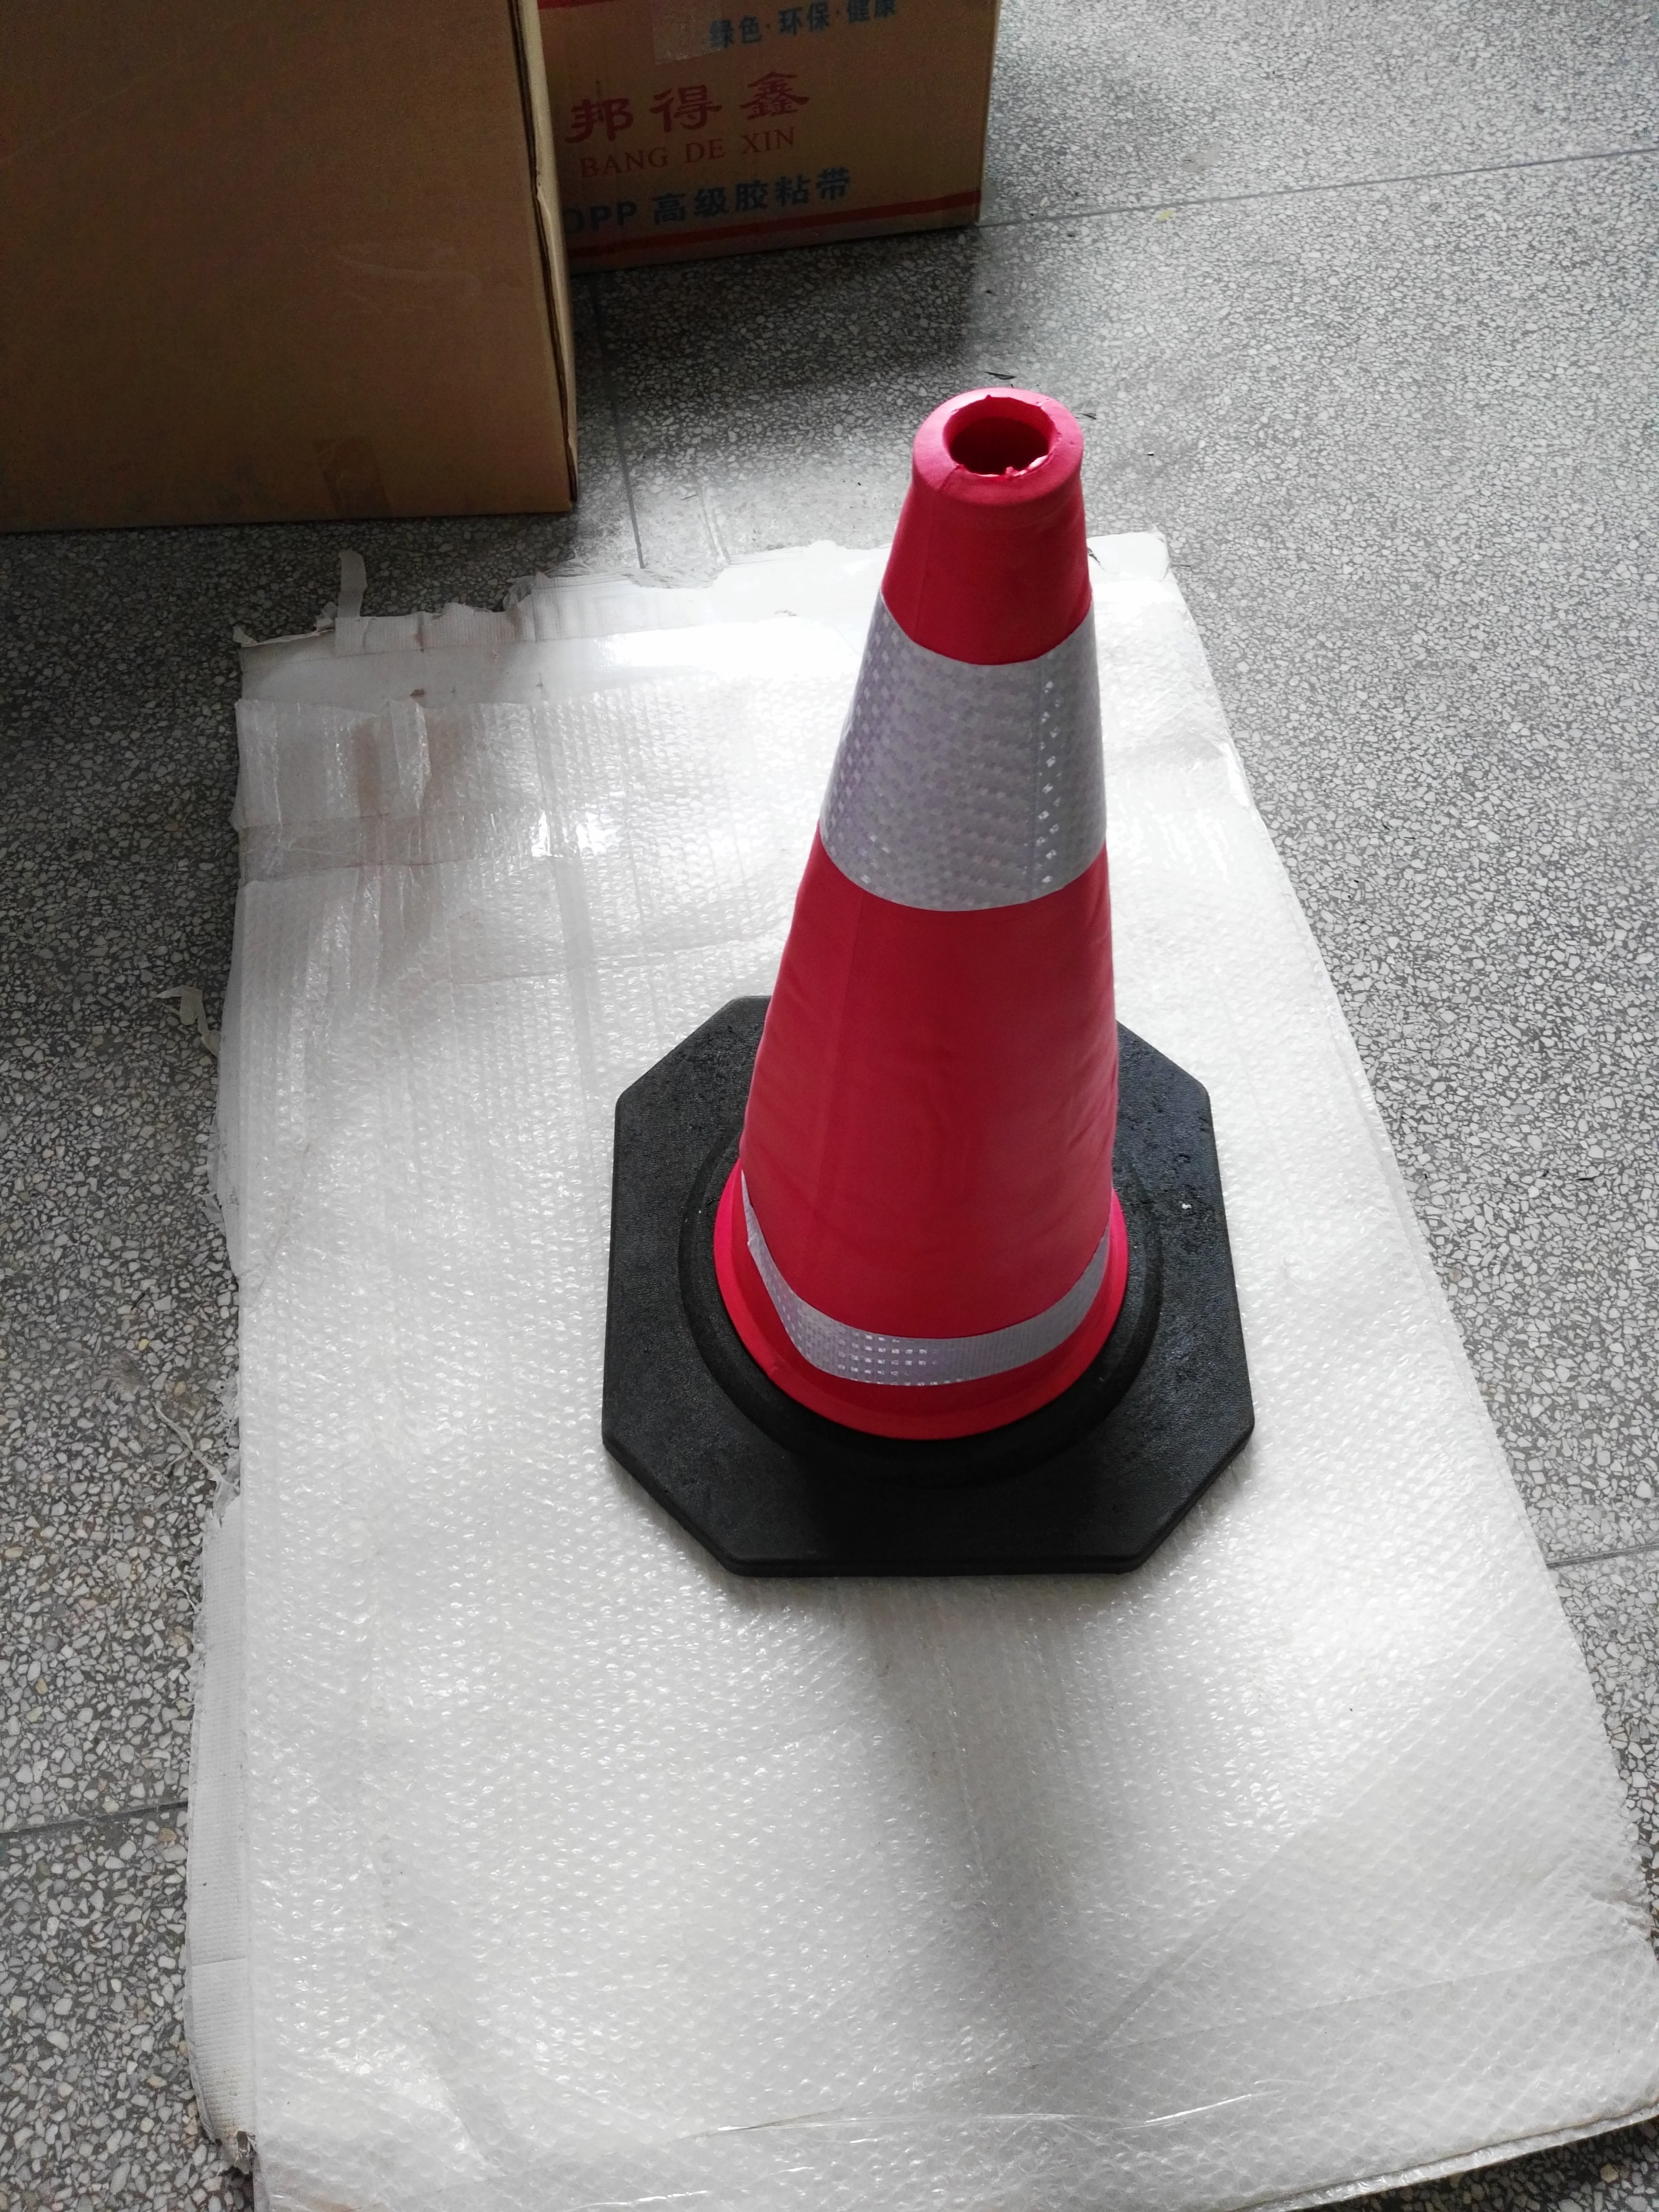 HC-O-3010 EMERGENCY TRAFFIC CONE BUS PARTS